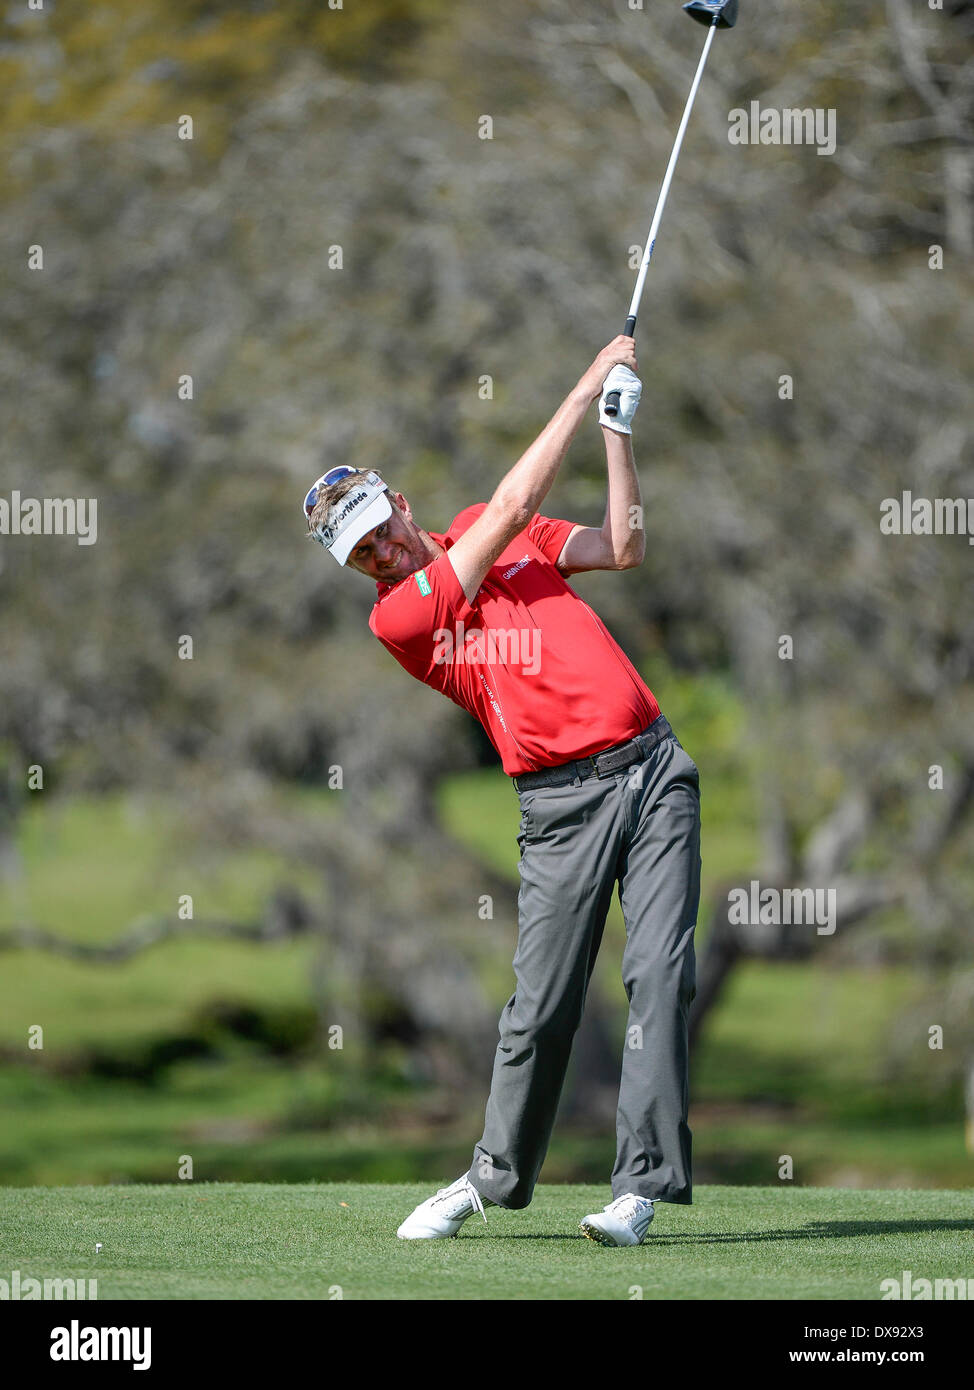 20th Mar, 2014. David Lynn on #16 tee during first round golf action of the Arnold Palmer Invitational presented by Mastercard held at Arnold Palmer's Bay ...